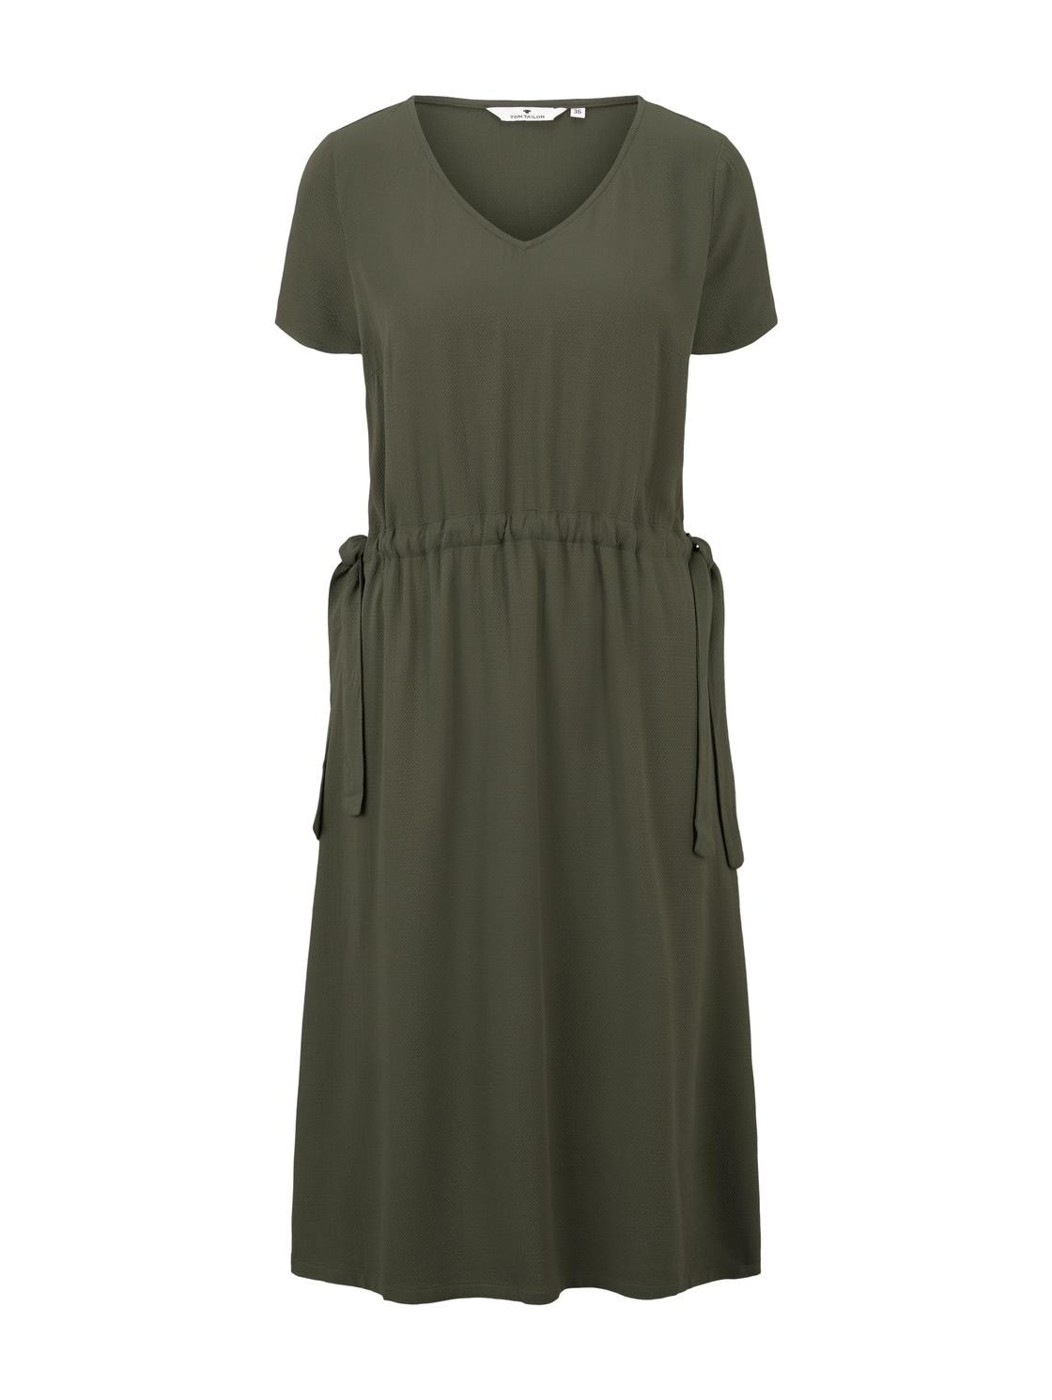 dress with structure - Damen